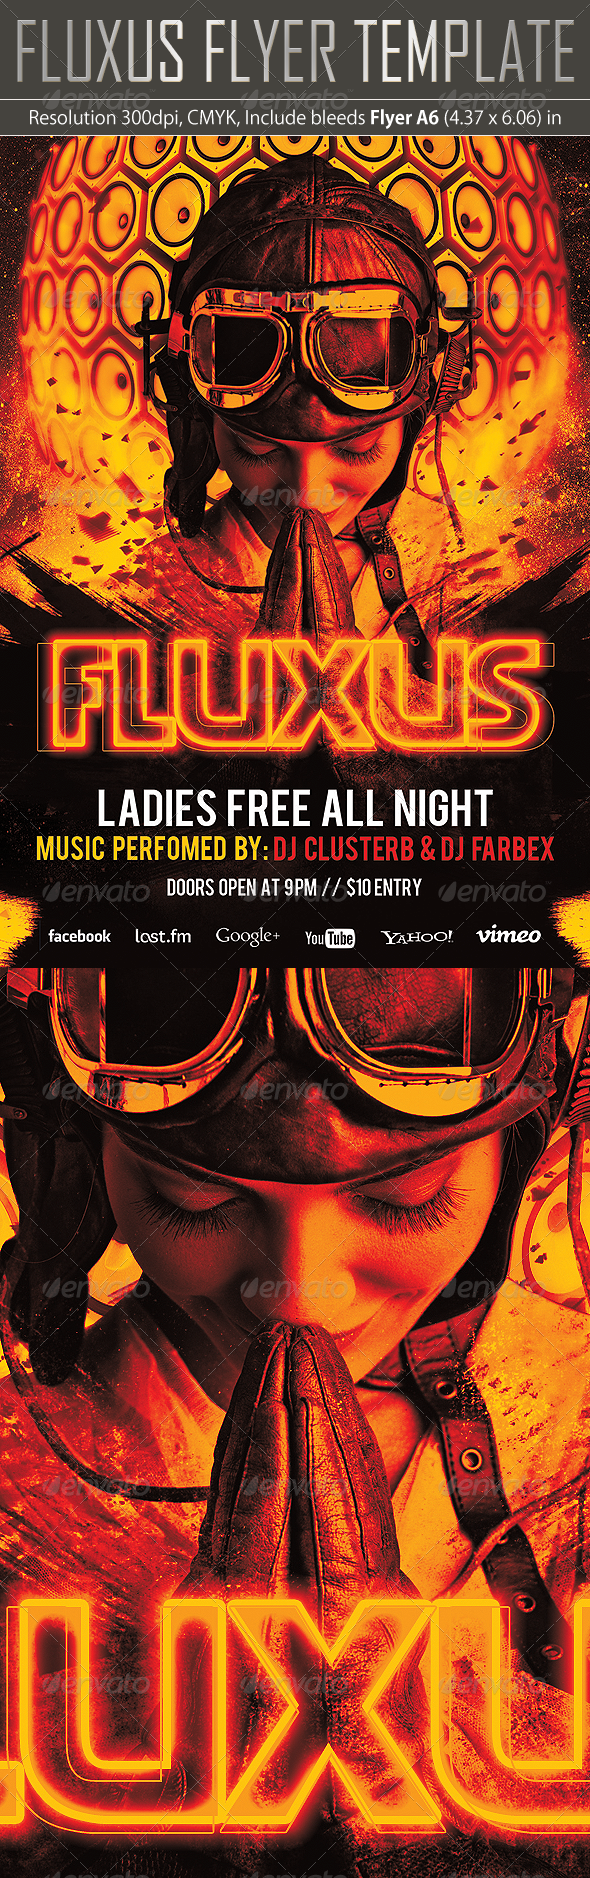 Fluxus Flyer Template - Clubs & Parties Events